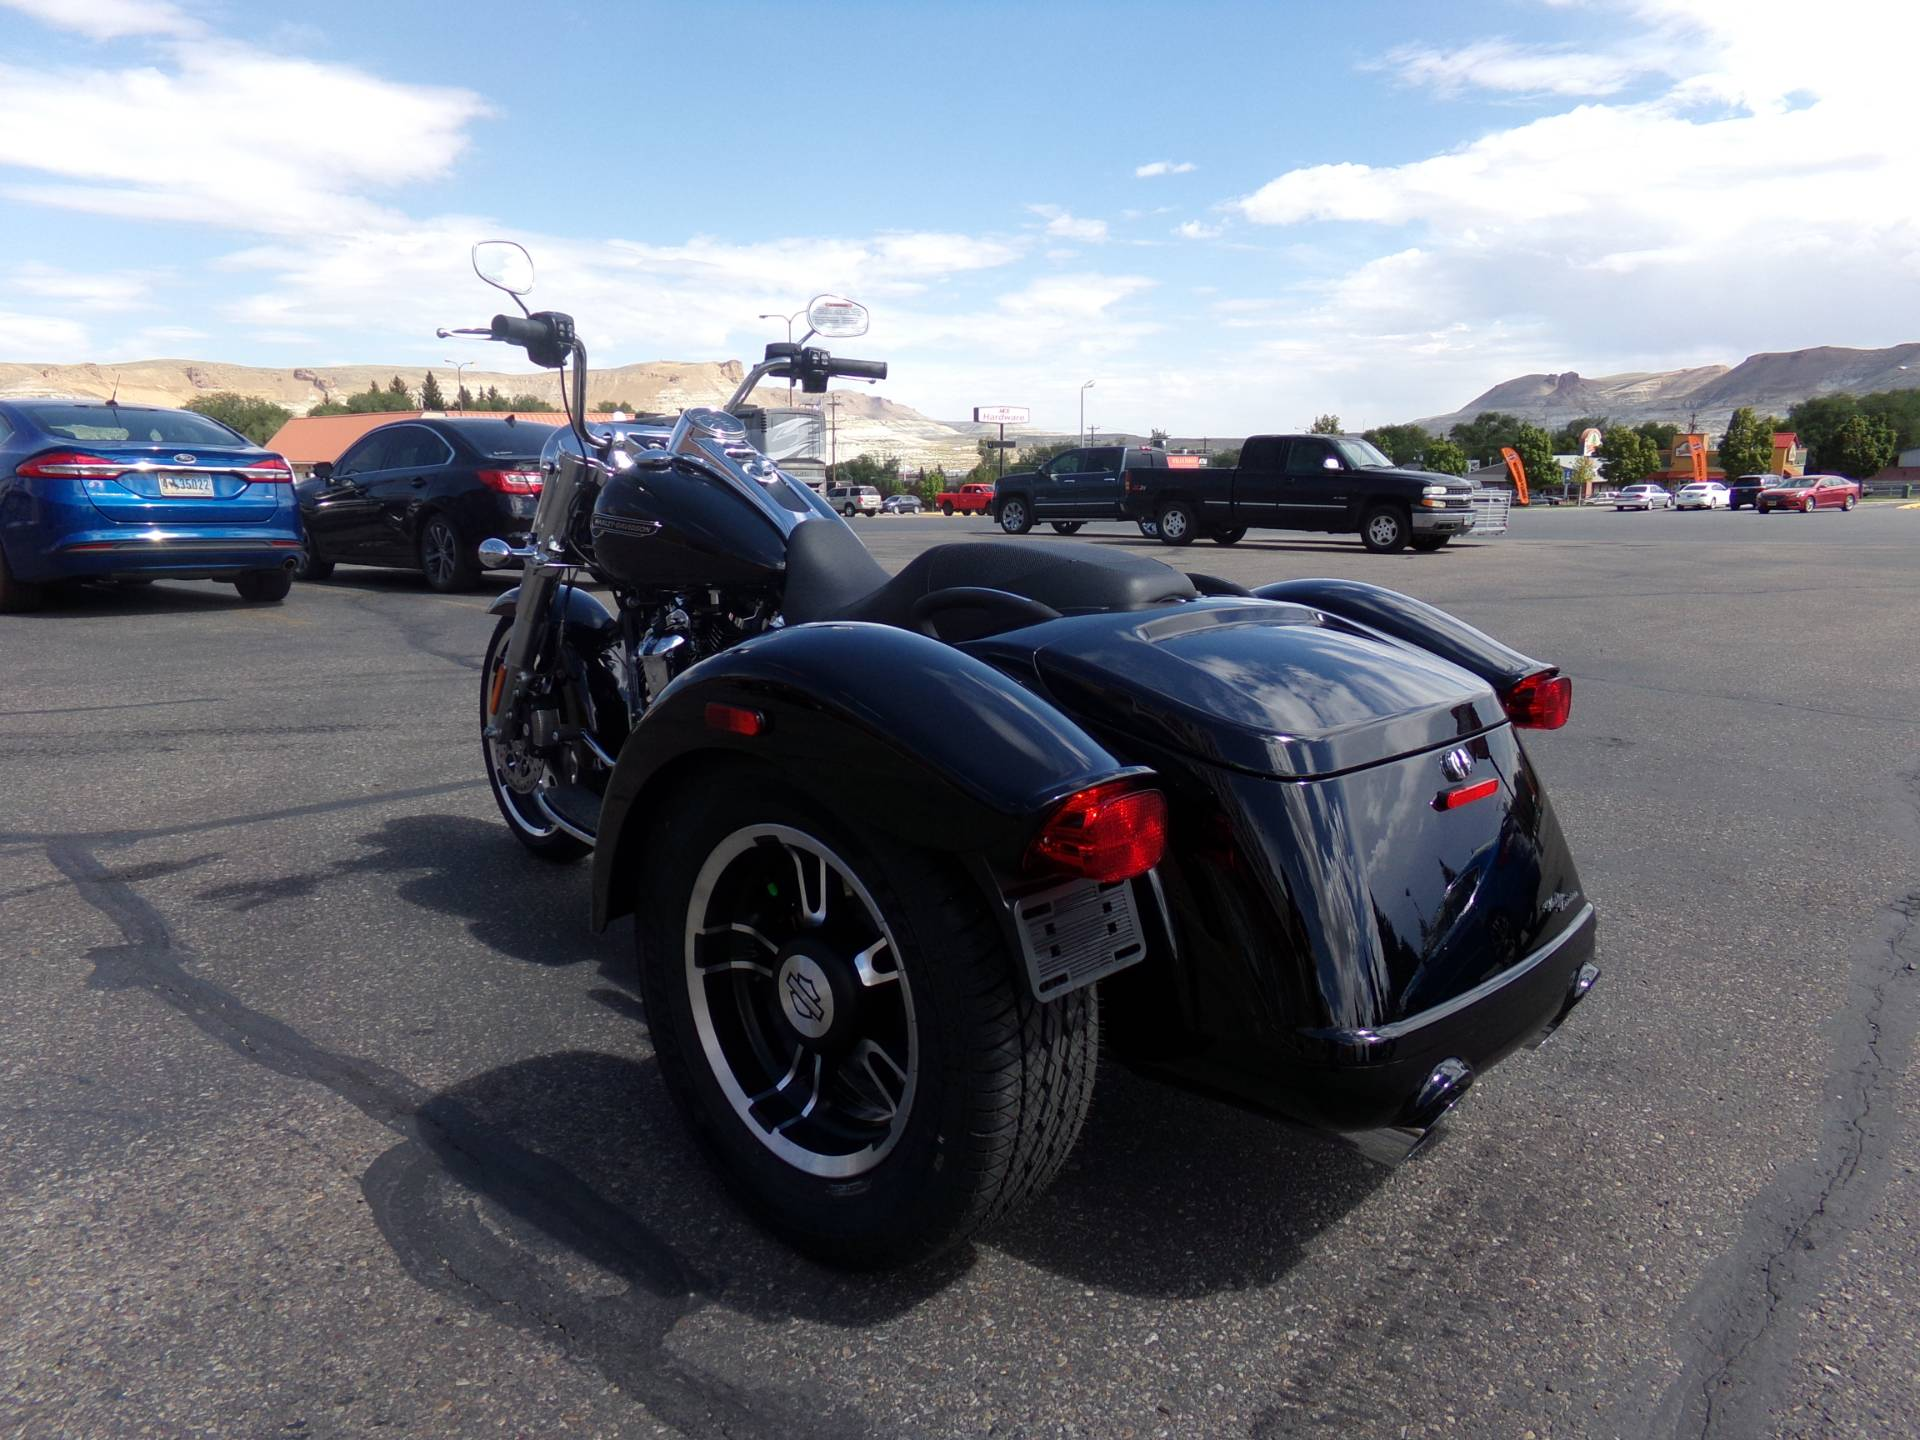 2019 Harley-Davidson Freewheeler® in Green River, Wyoming - Photo 4